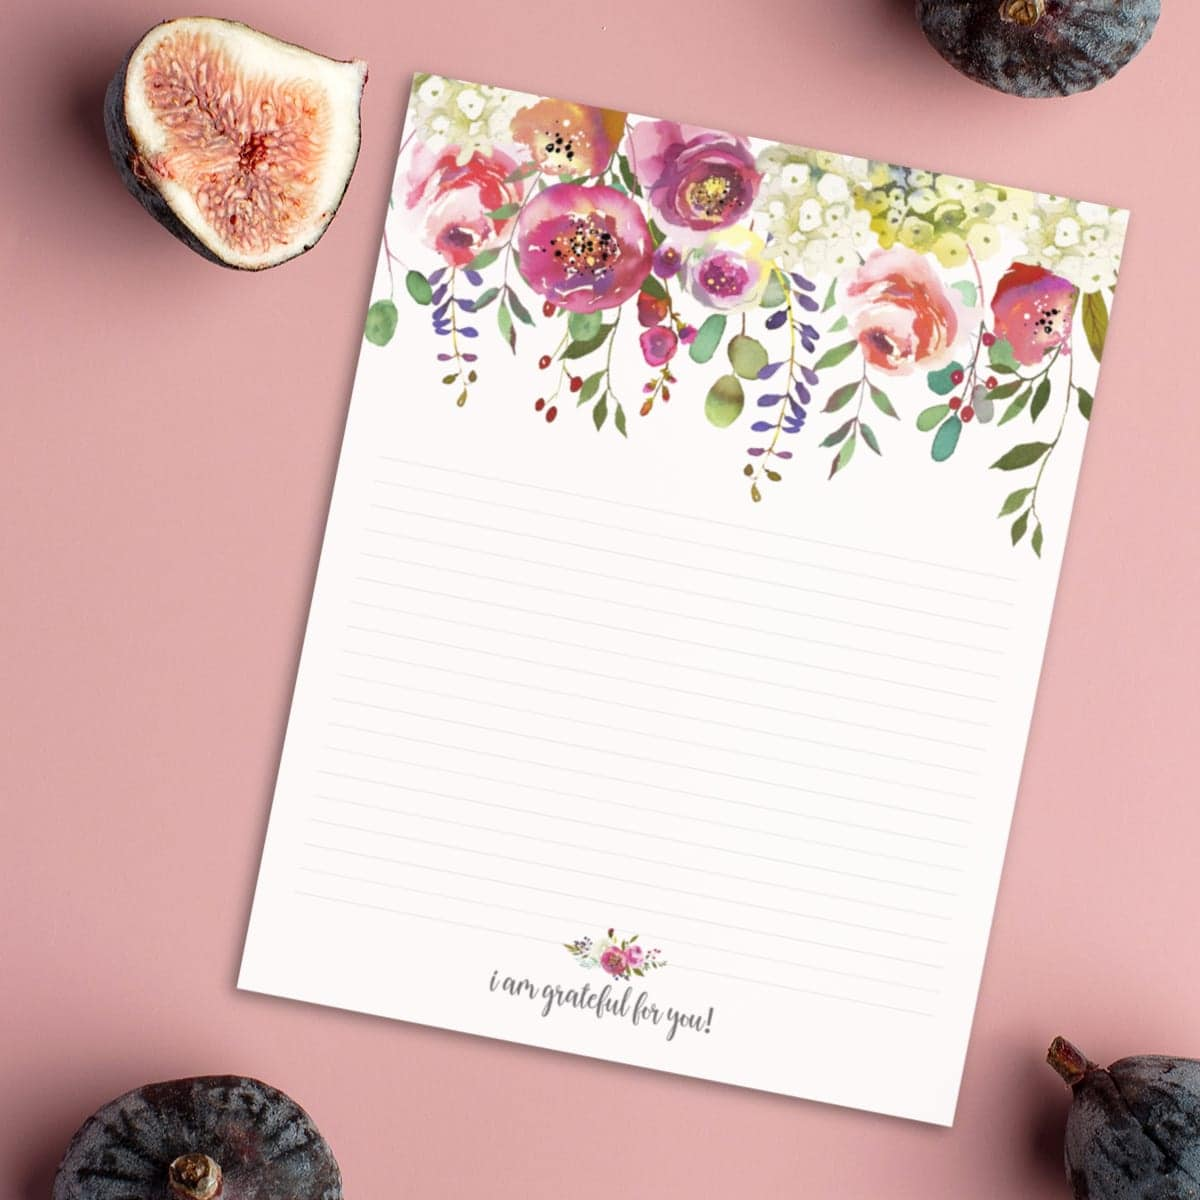 Printable Gratitude Stationery CarrieElle.com